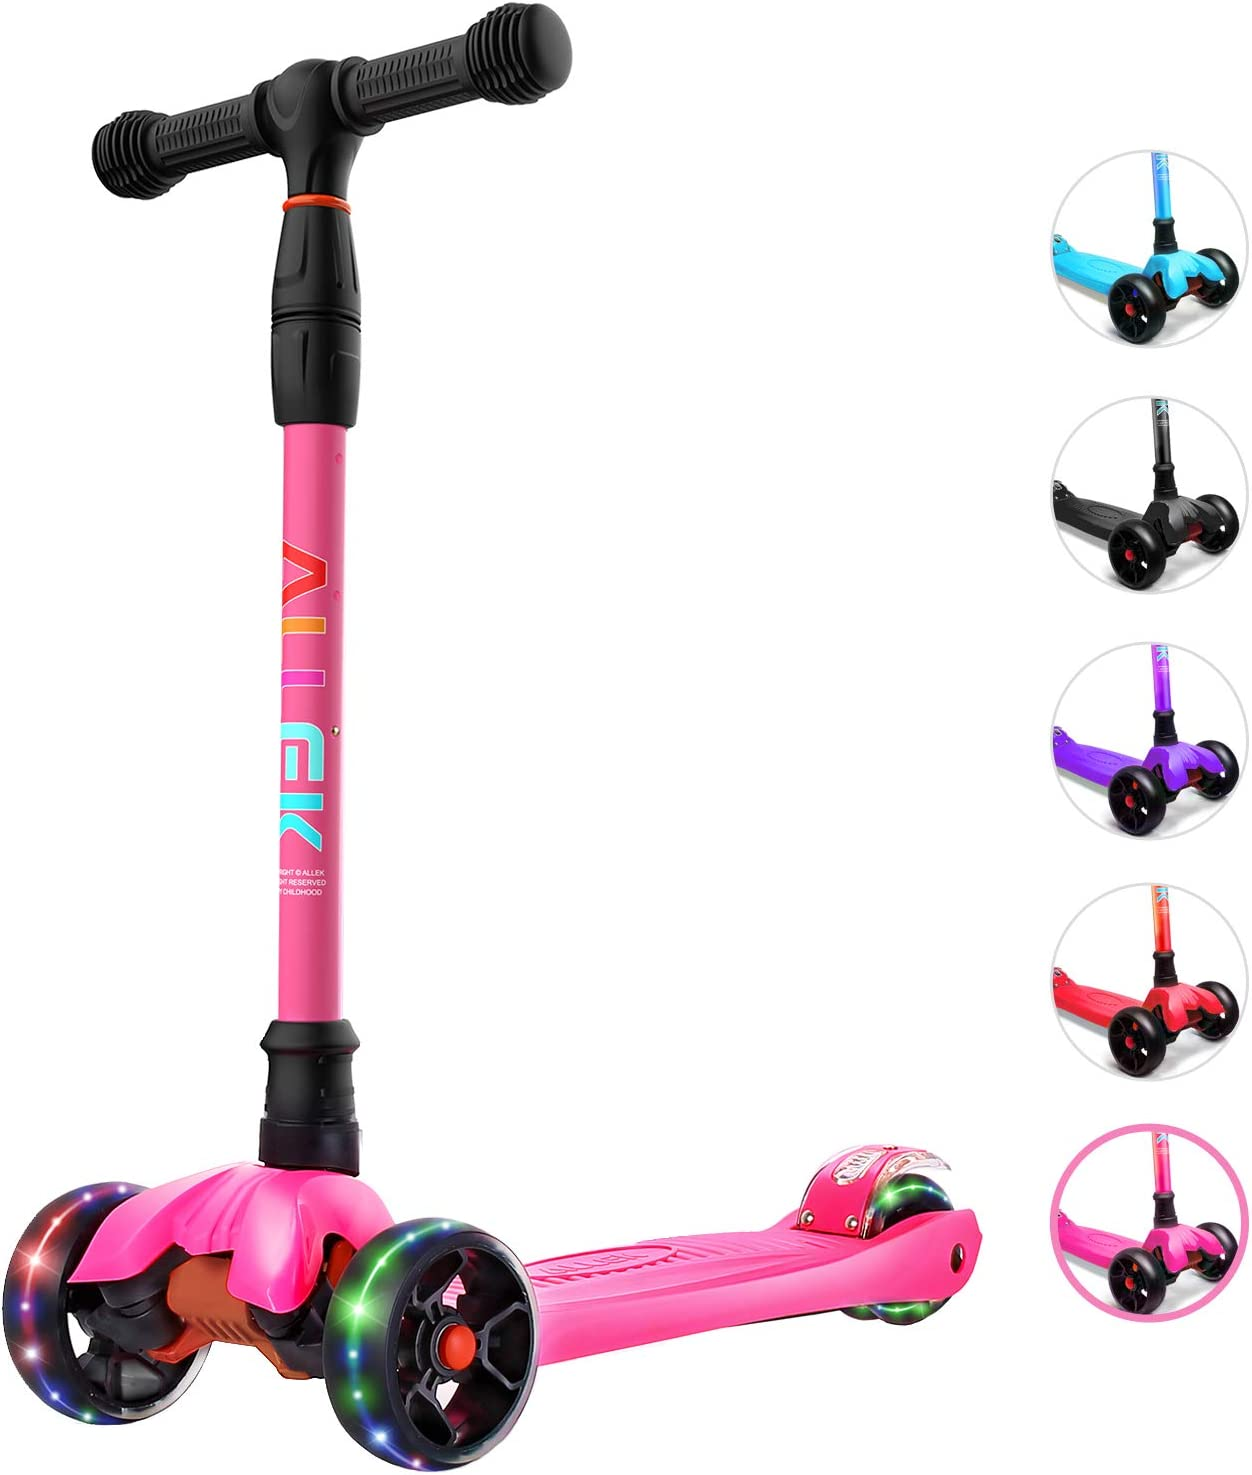 Allek Kick Scooter B02 Lean 'N with PU Extra Wide Baltimore Mall Low price Glide